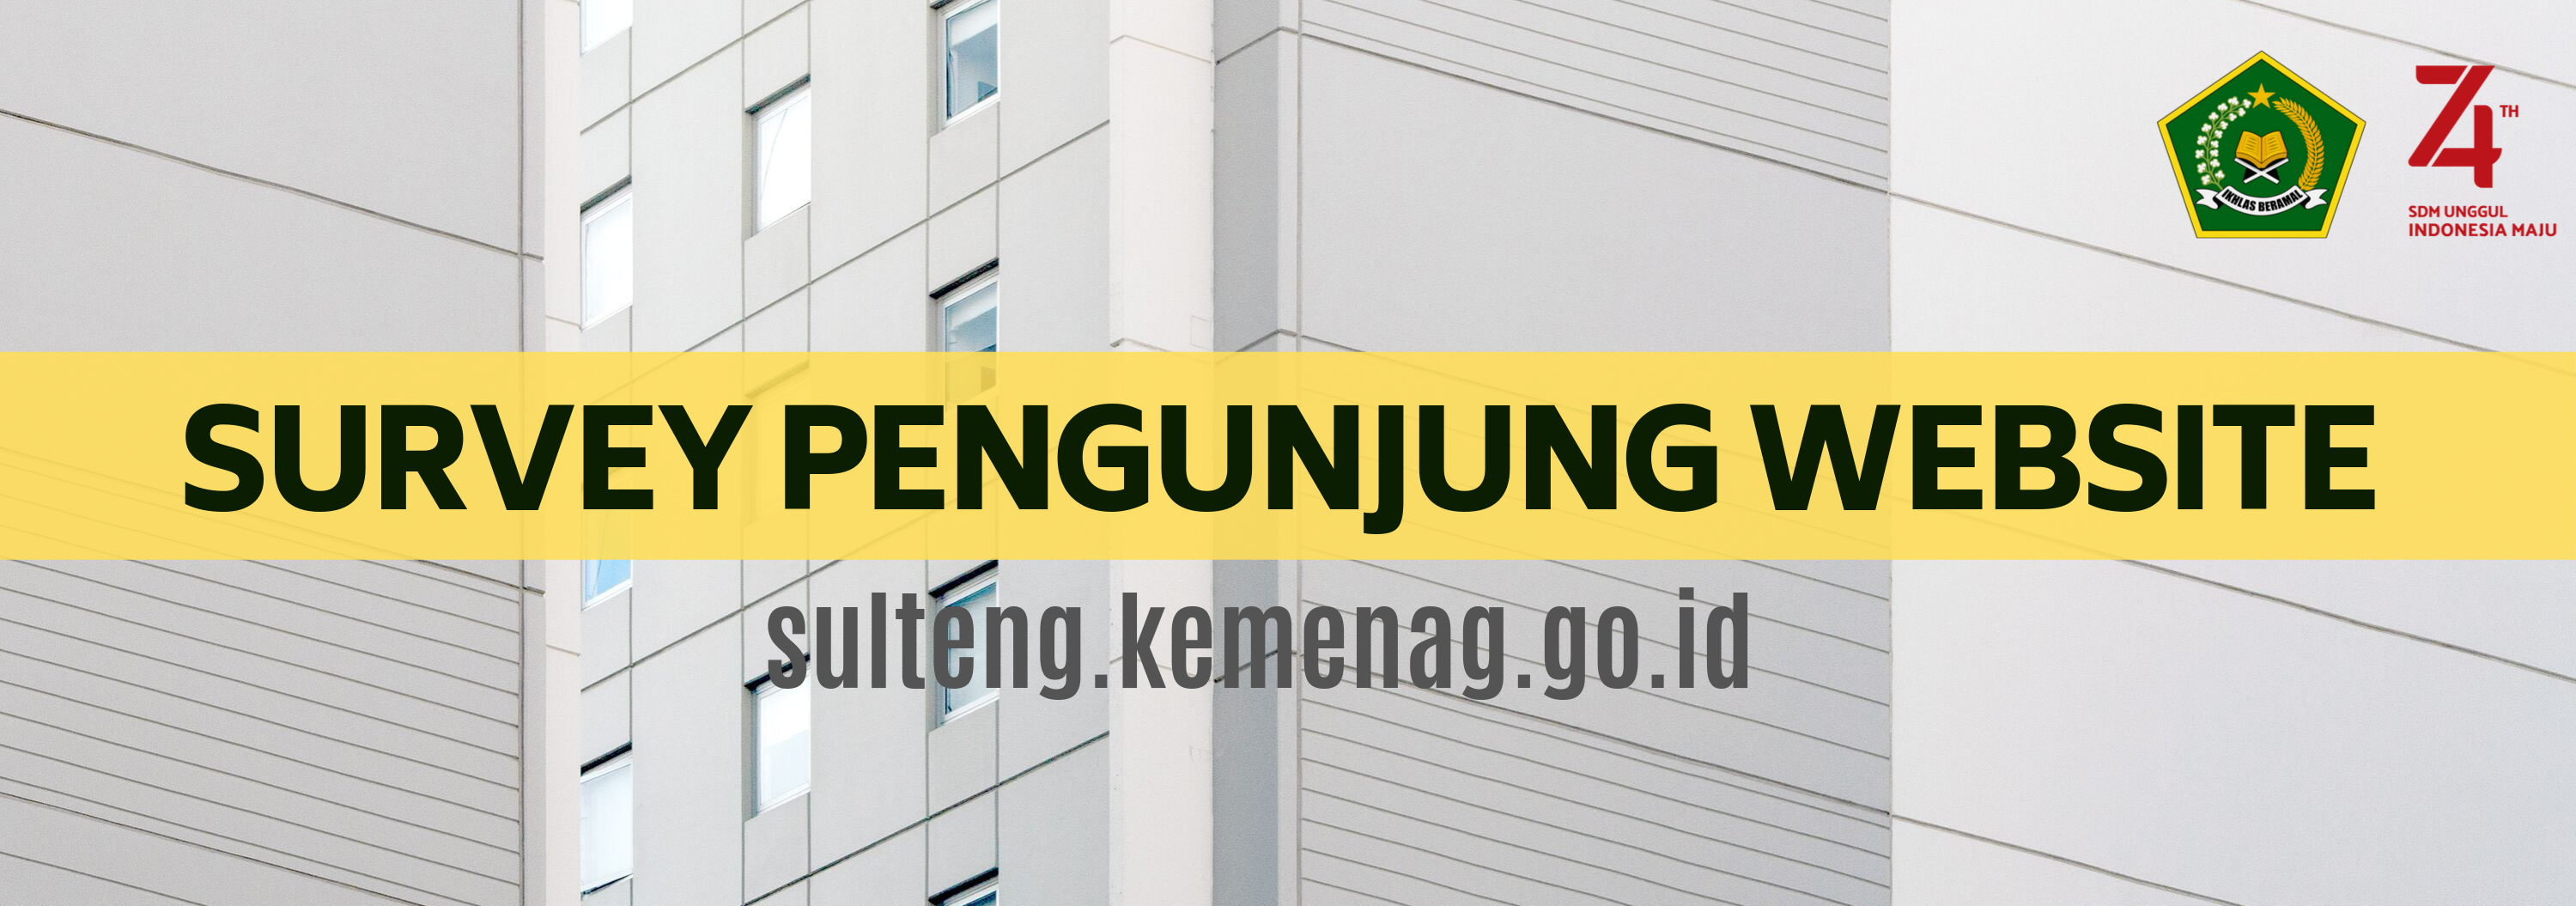 Survey Pengunjung Website